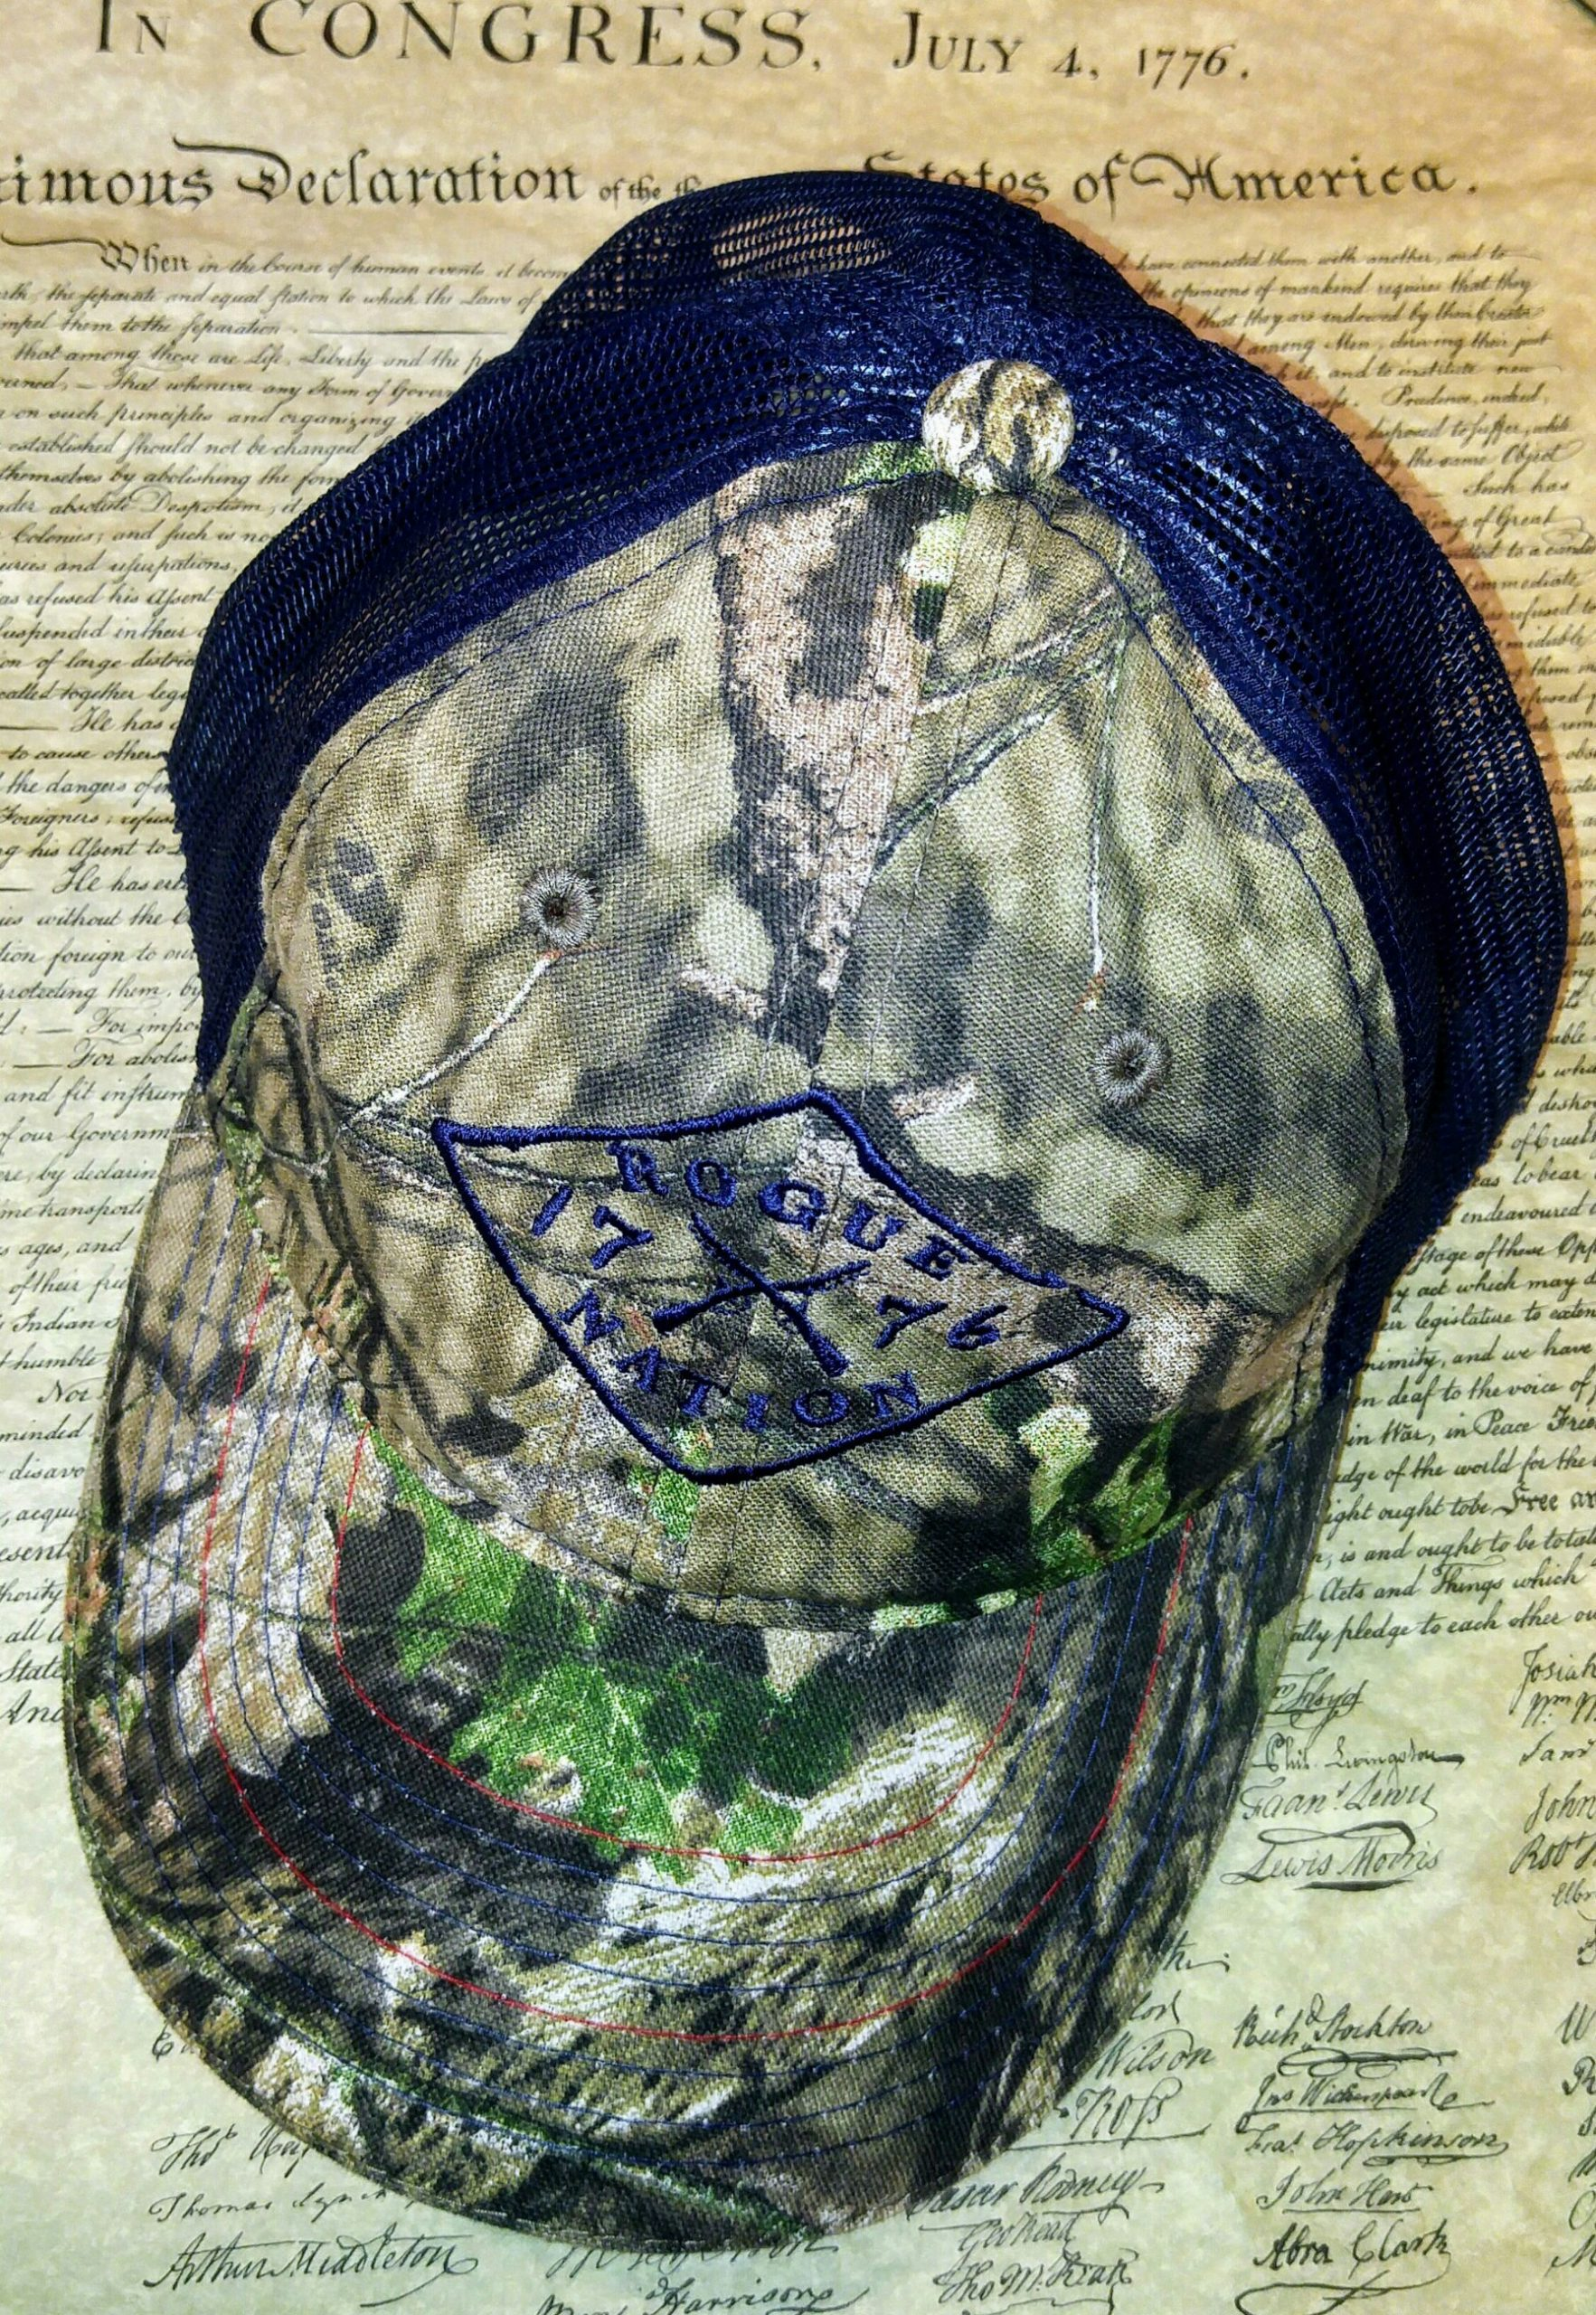 Mossy Oak Country Neon Blue Hat with the Rogue Nation 1776 logo